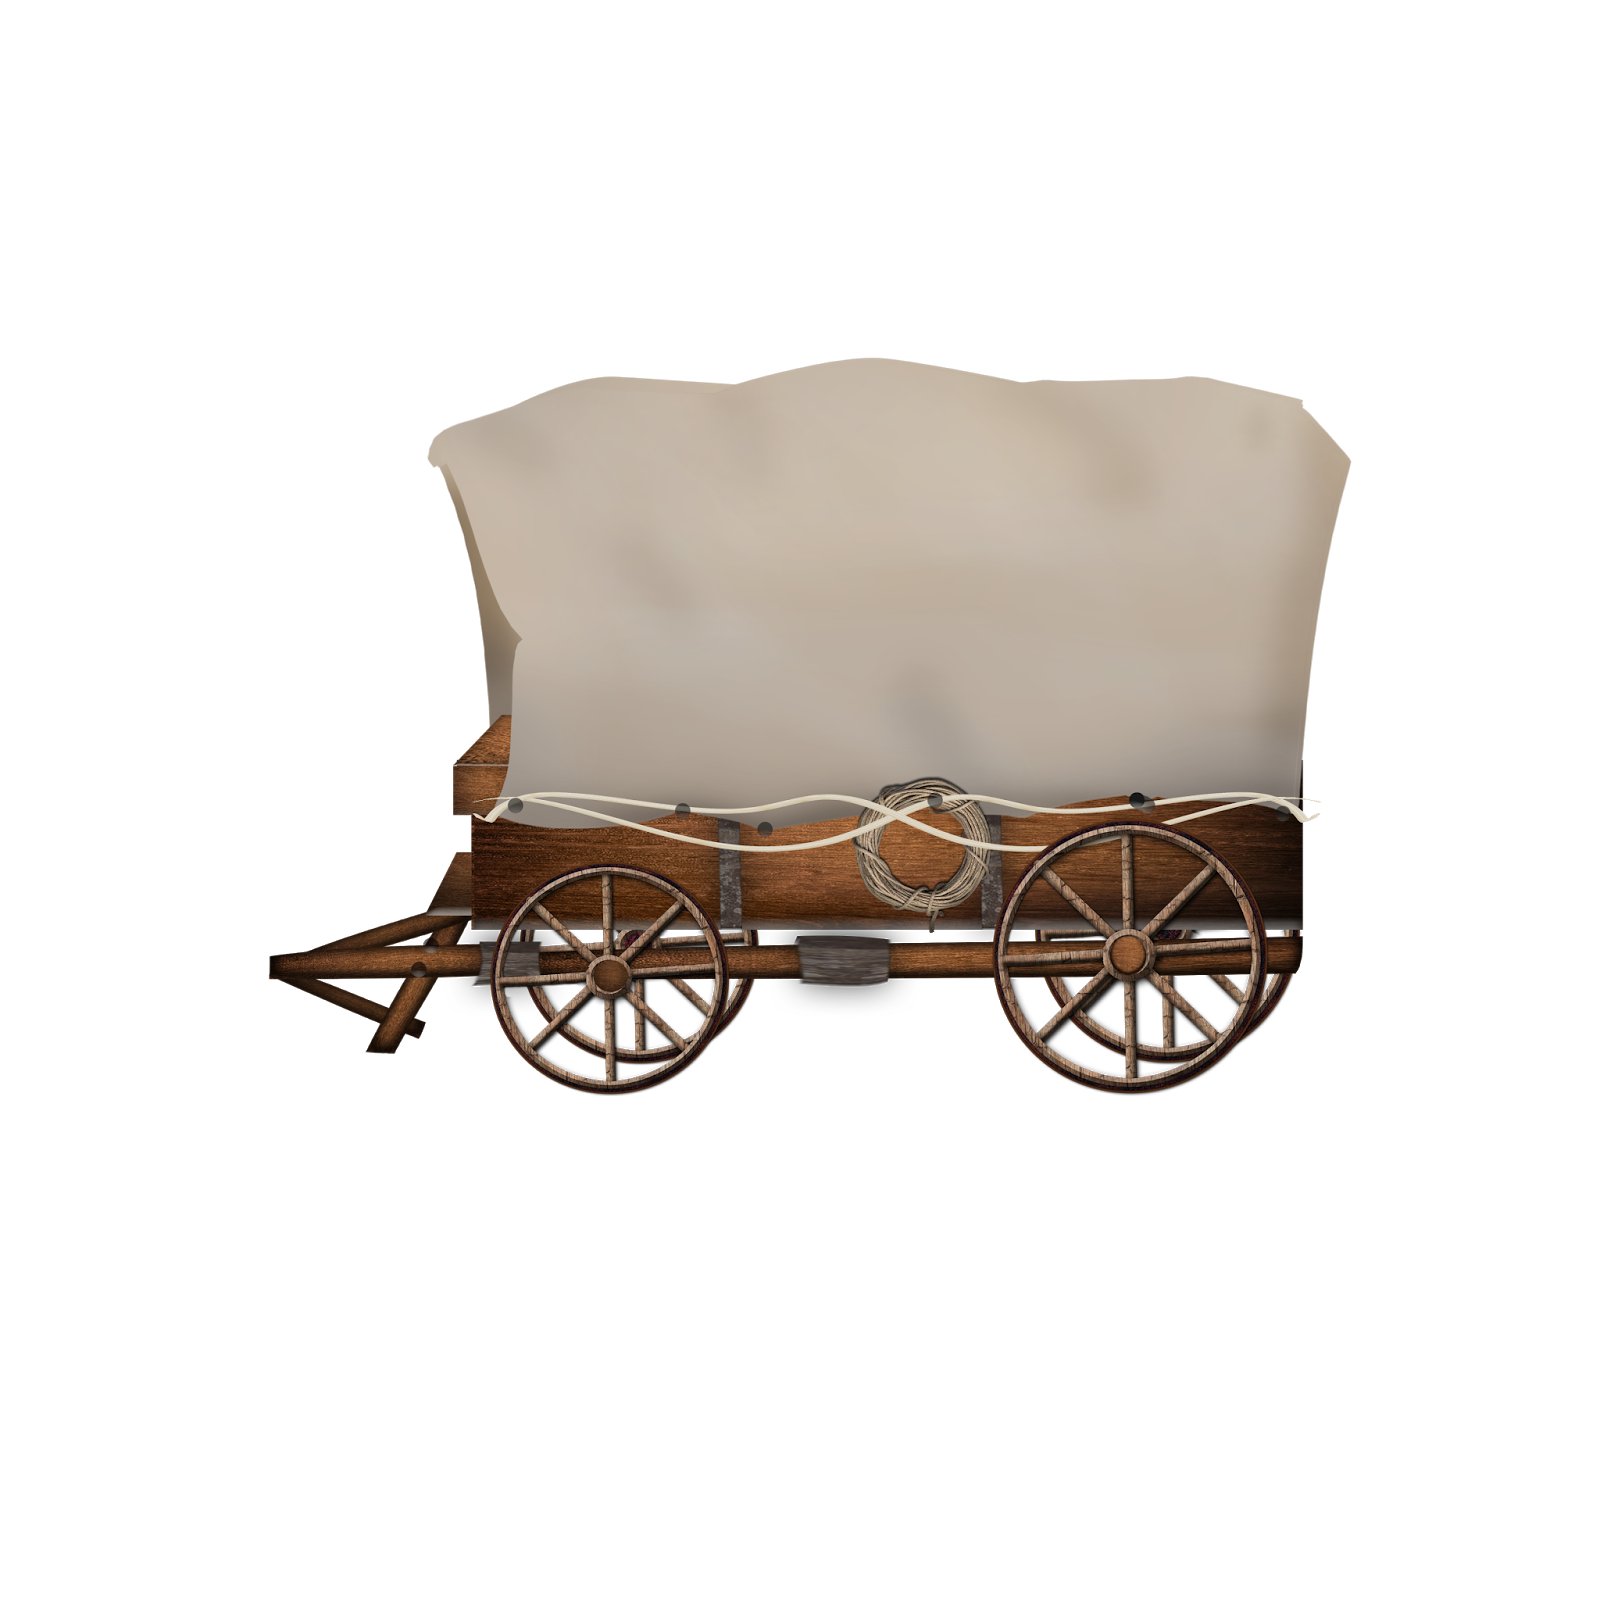 Heartland rustic forter sets in addition western style wagon wheel